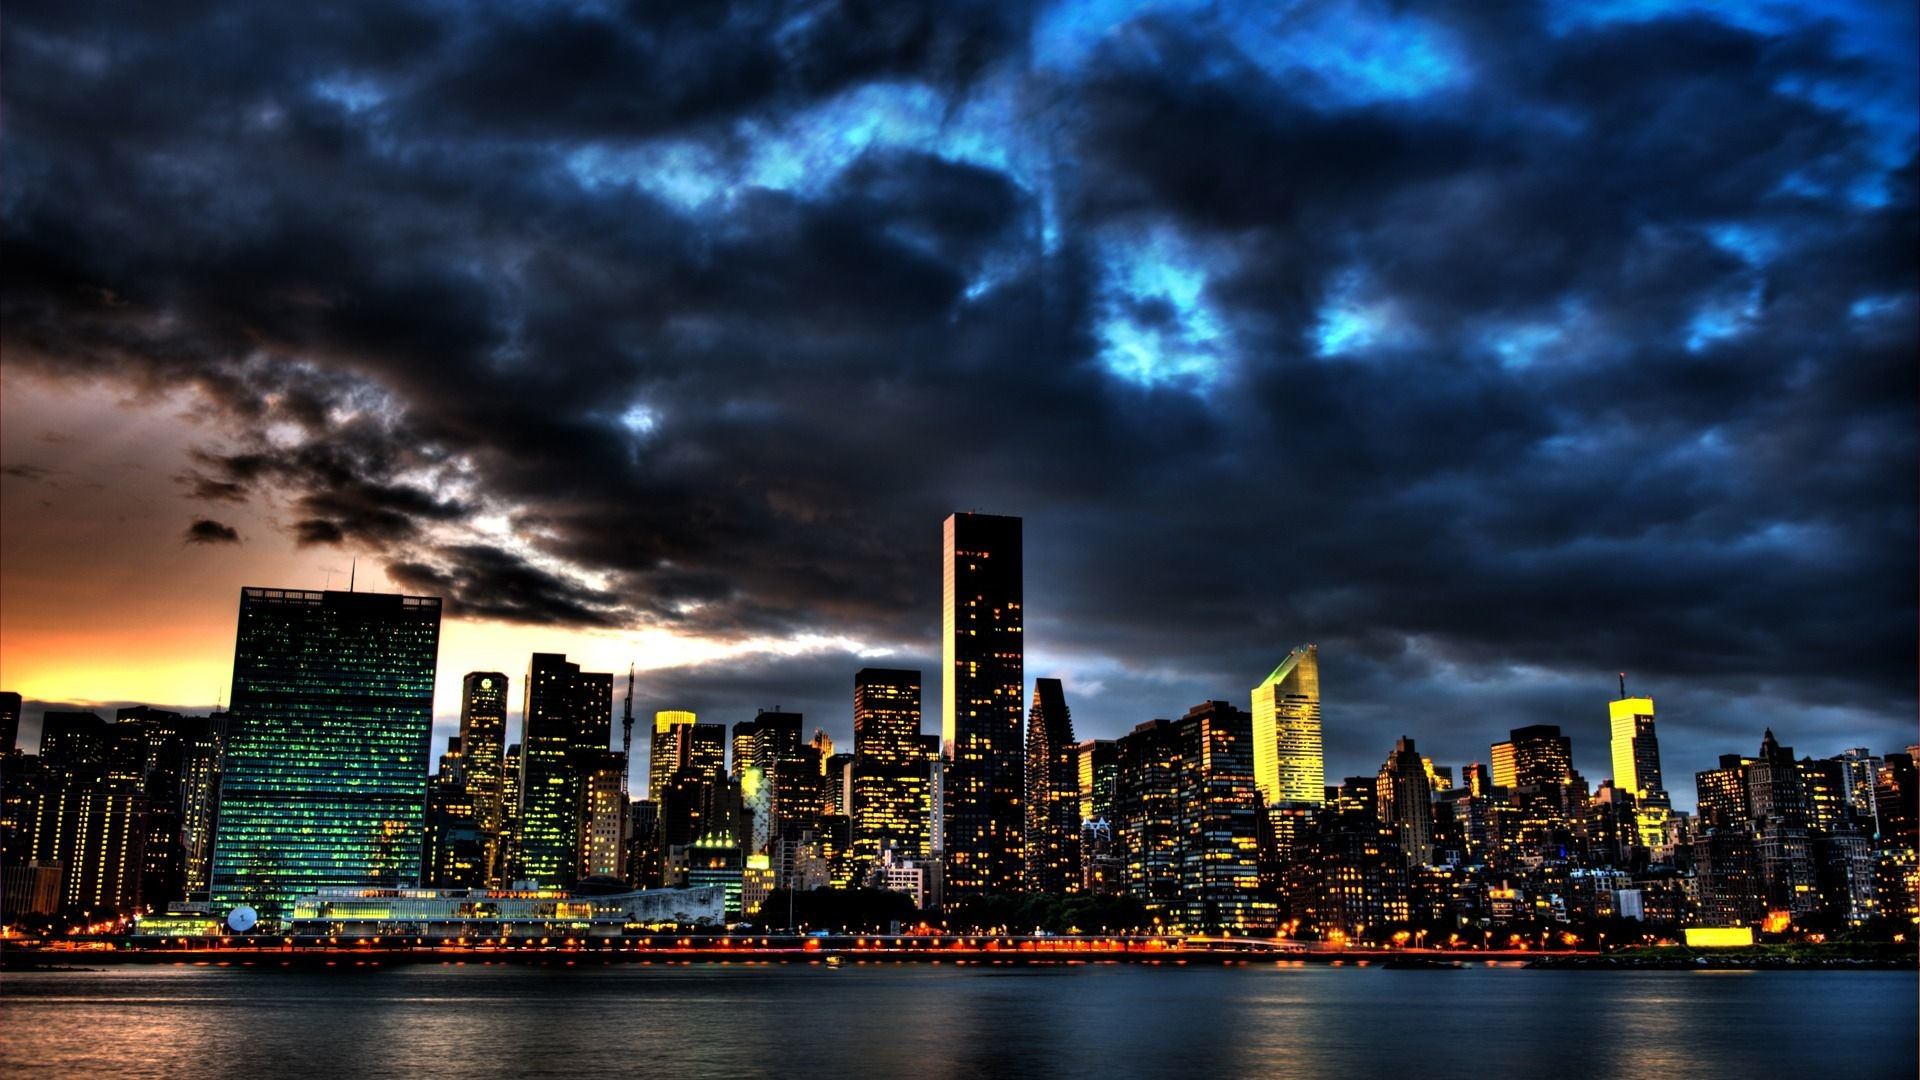 1920x1080 New York City Skyline 1080p Wallpaper City HD Wallpapers Source